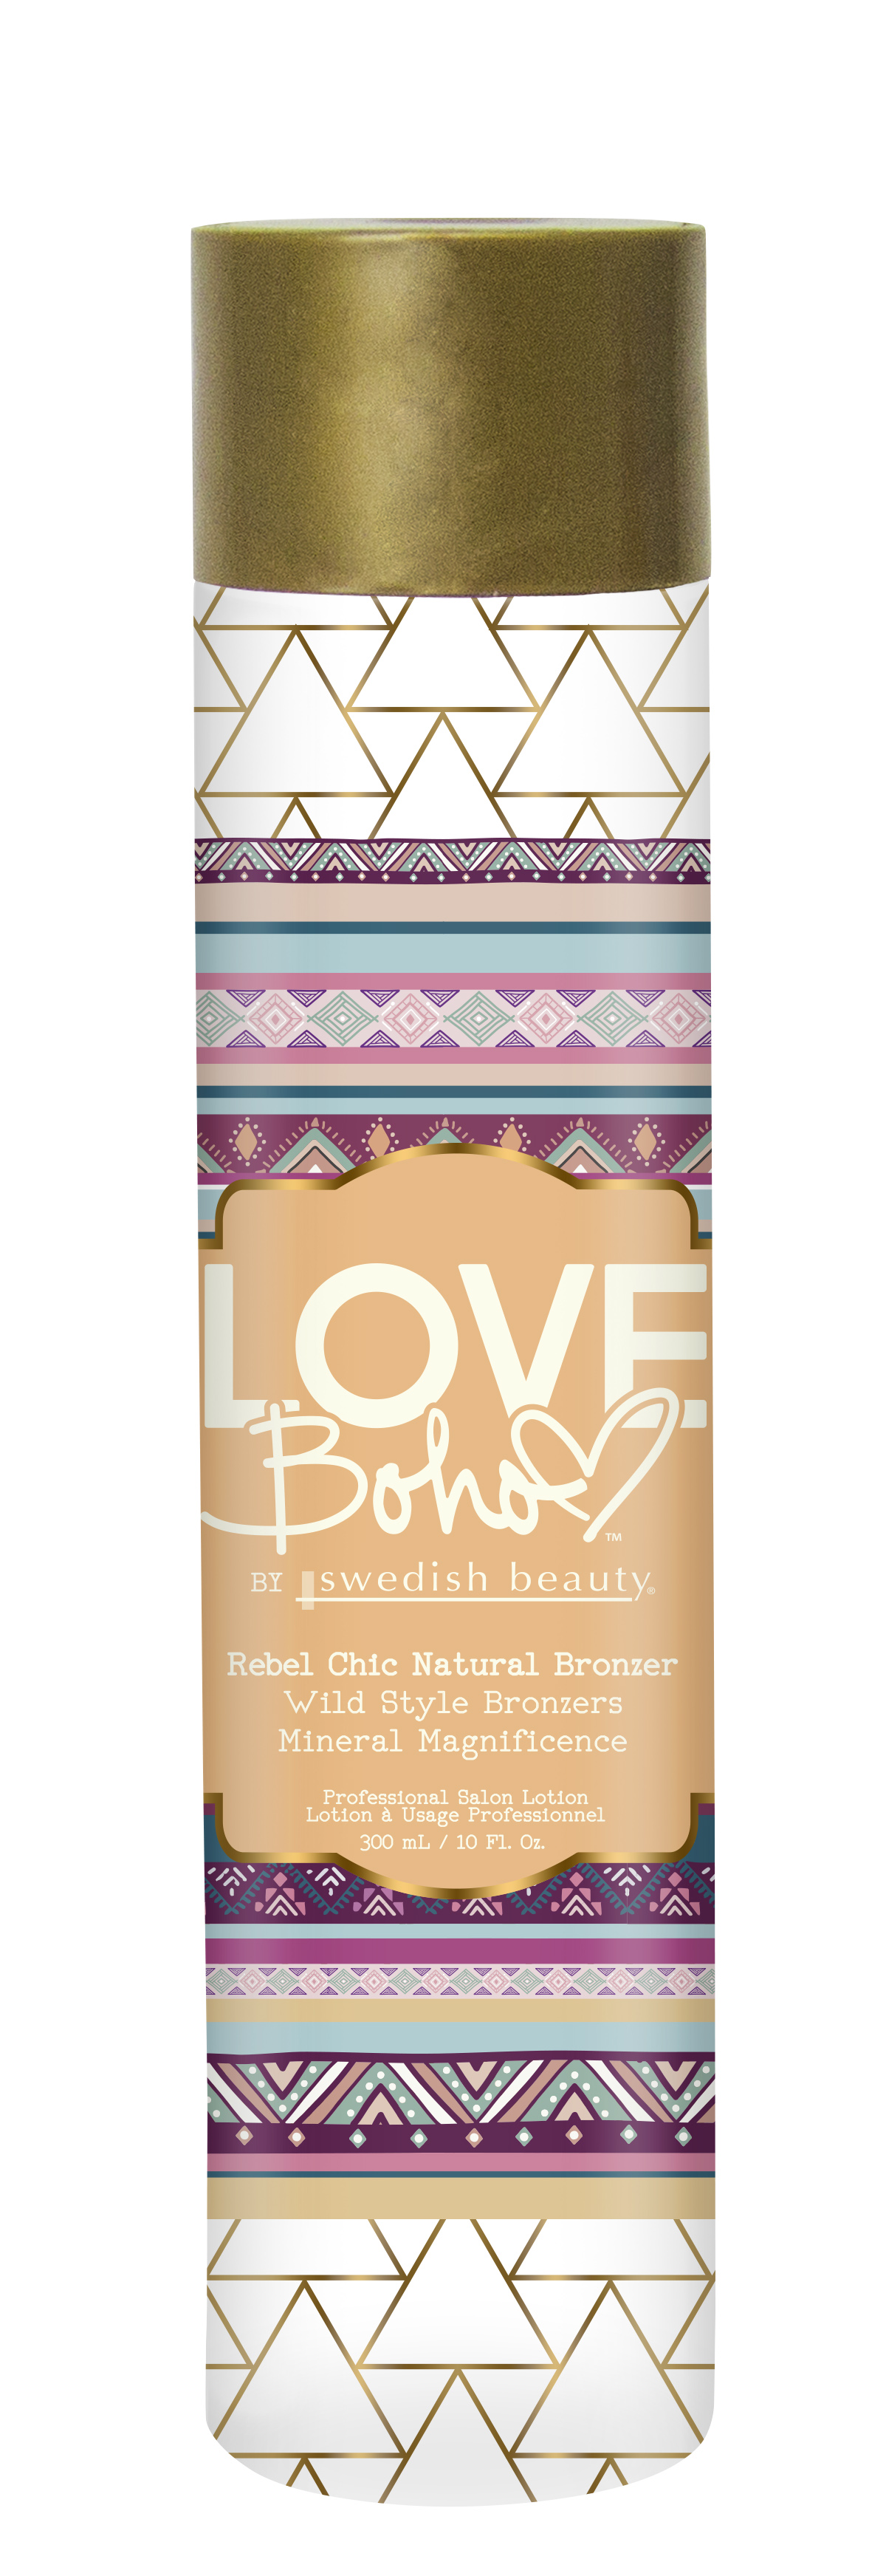 Love Boho® Rebel Chic Natural Bronzer